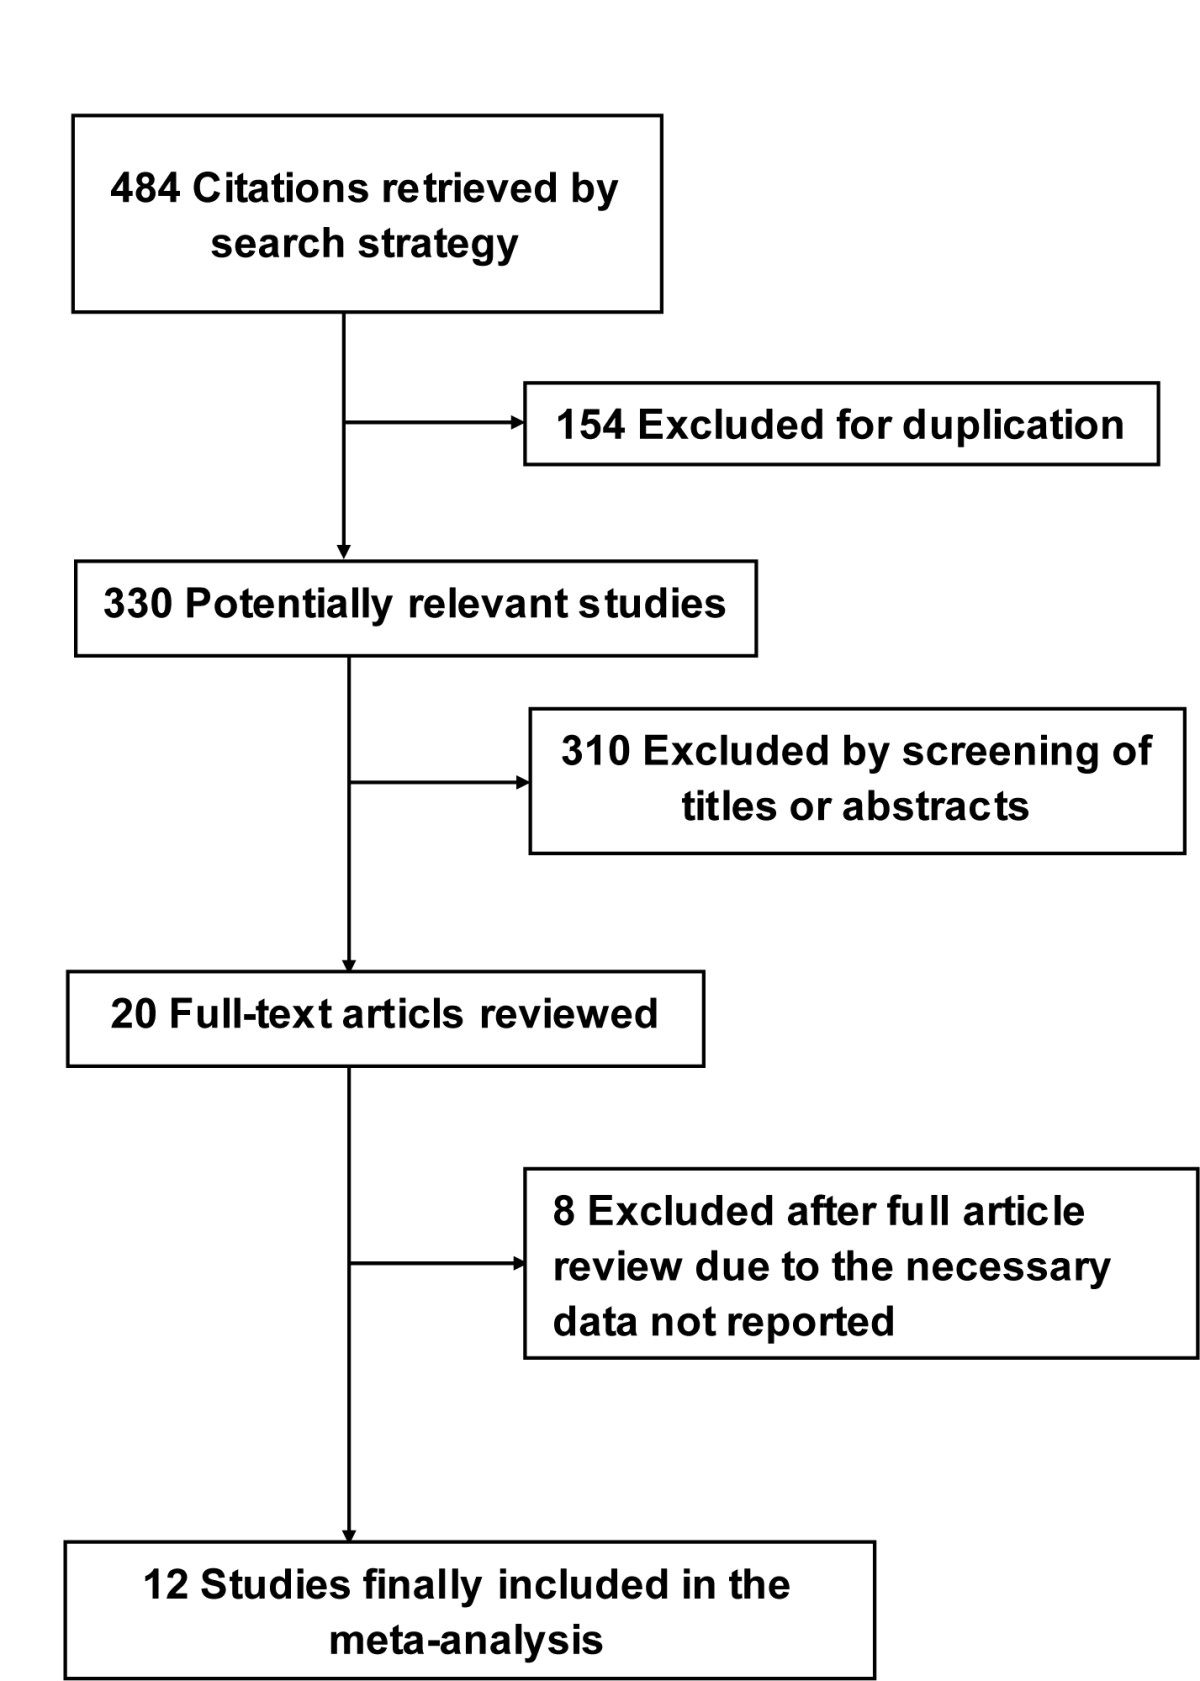 https://static-content.springer.com/image/art%3A10.1186%2Fcc11331/MediaObjects/13054_2012_Article_553_Fig1_HTML.jpg